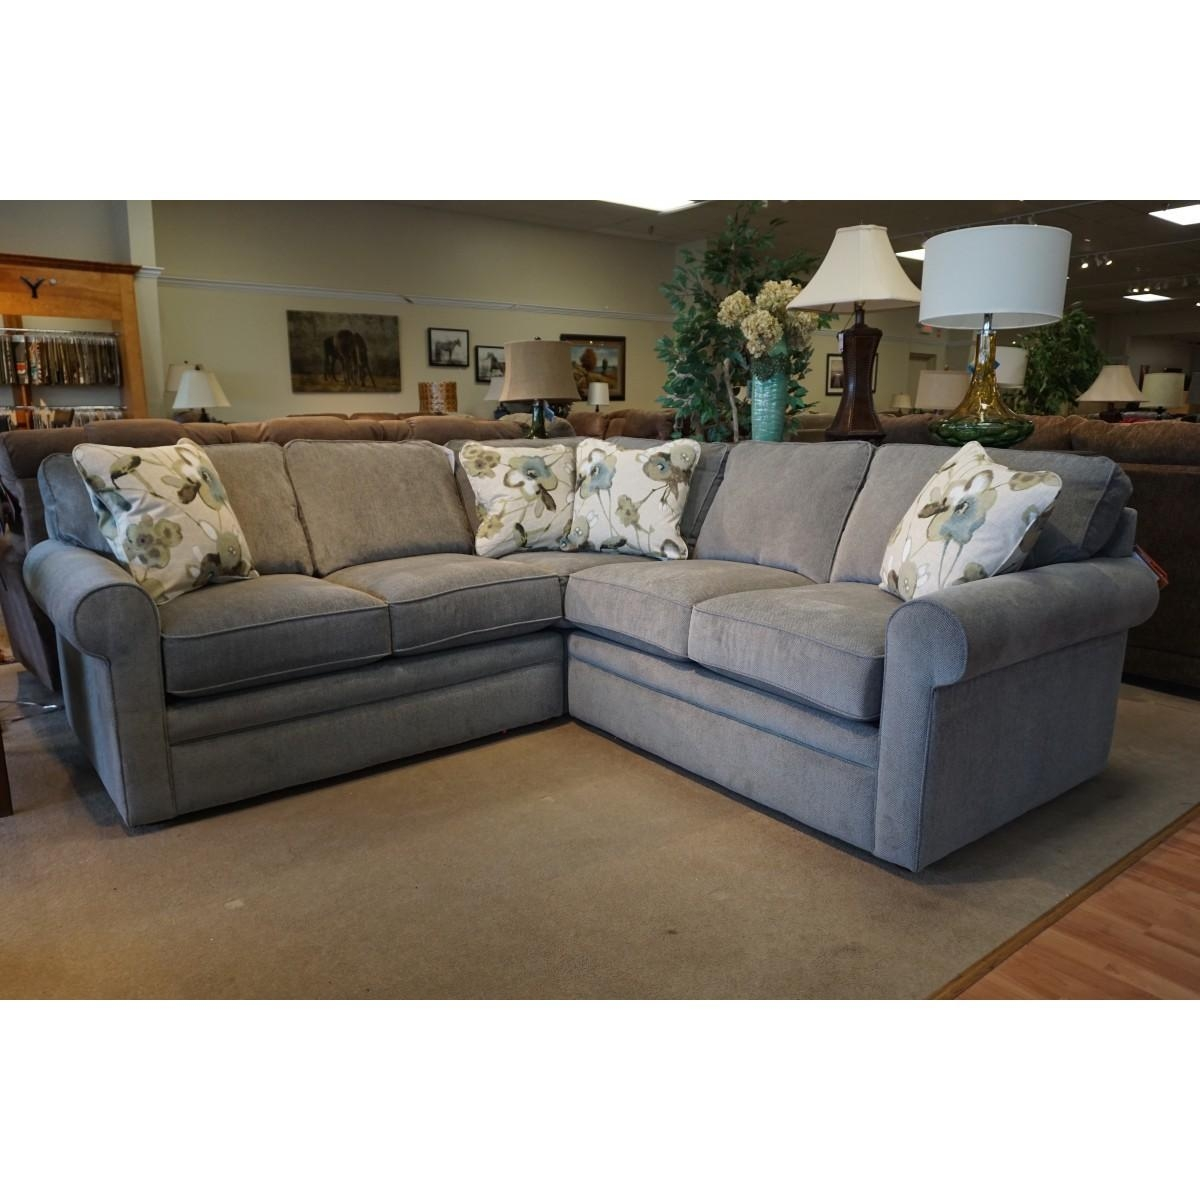 Z-Boy Collins Sectional pertaining to Lazyboy Sectional